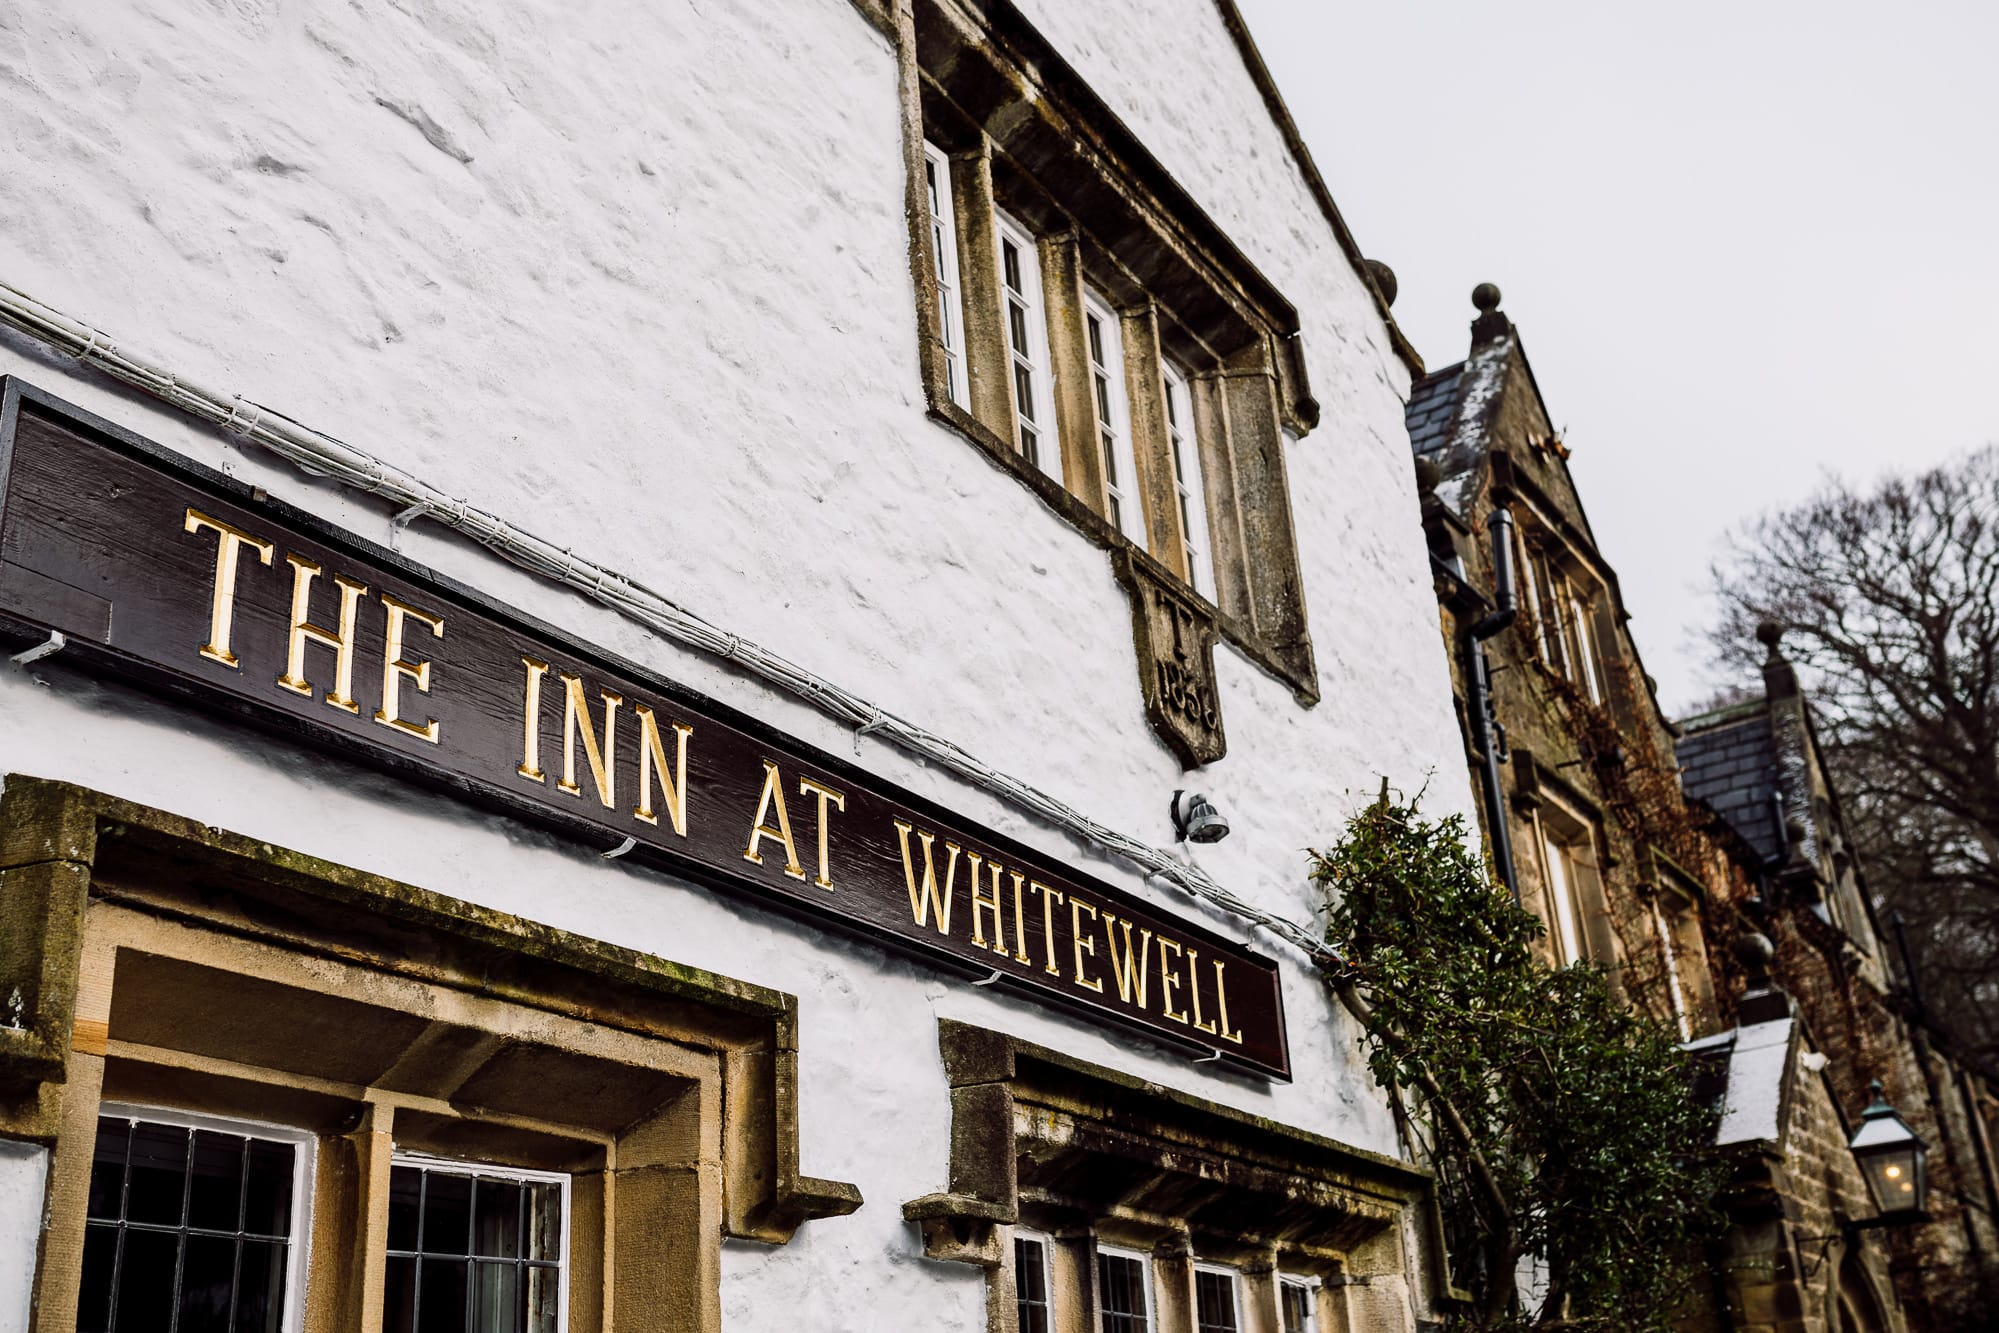 A picture of the Inn at Whitewell